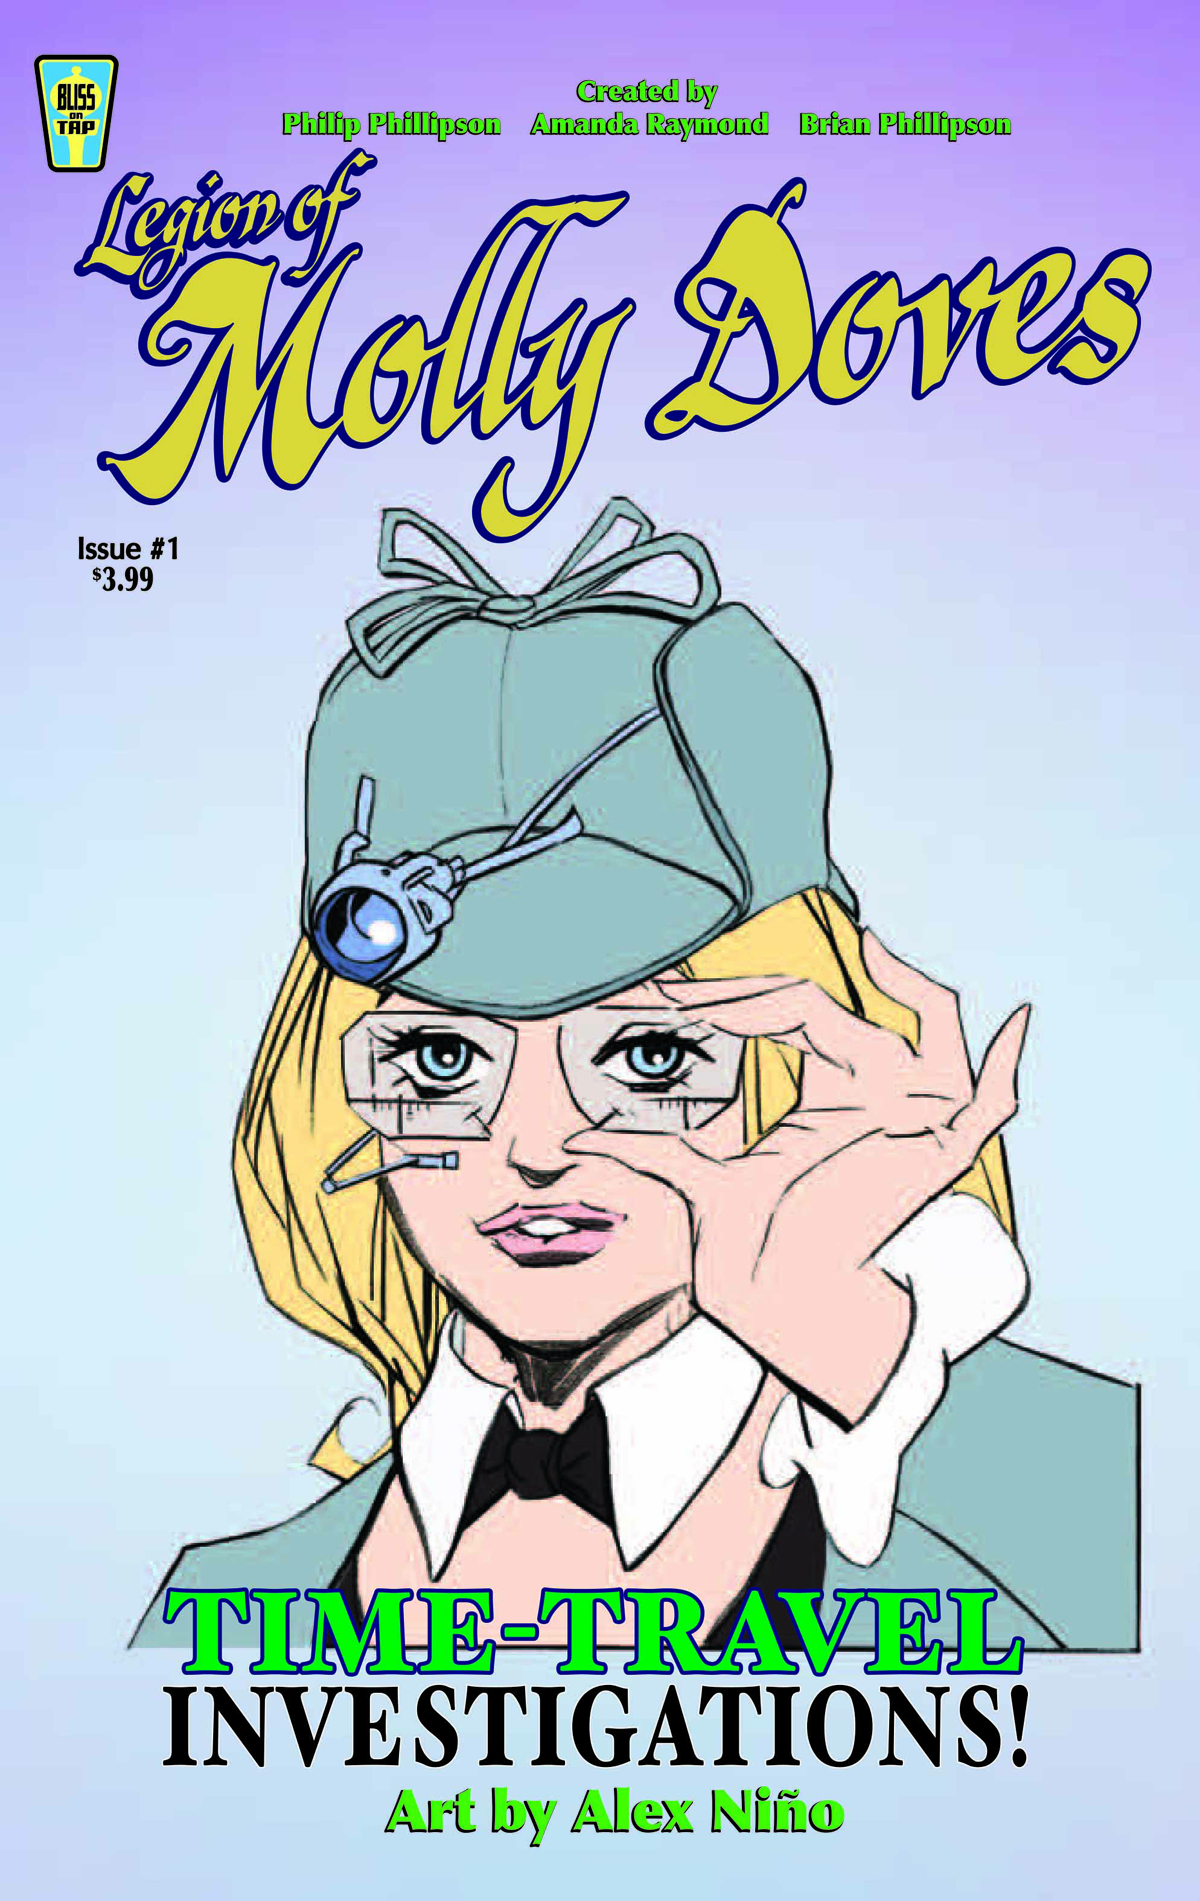 LEGEND OF MOLLY DOVES #1